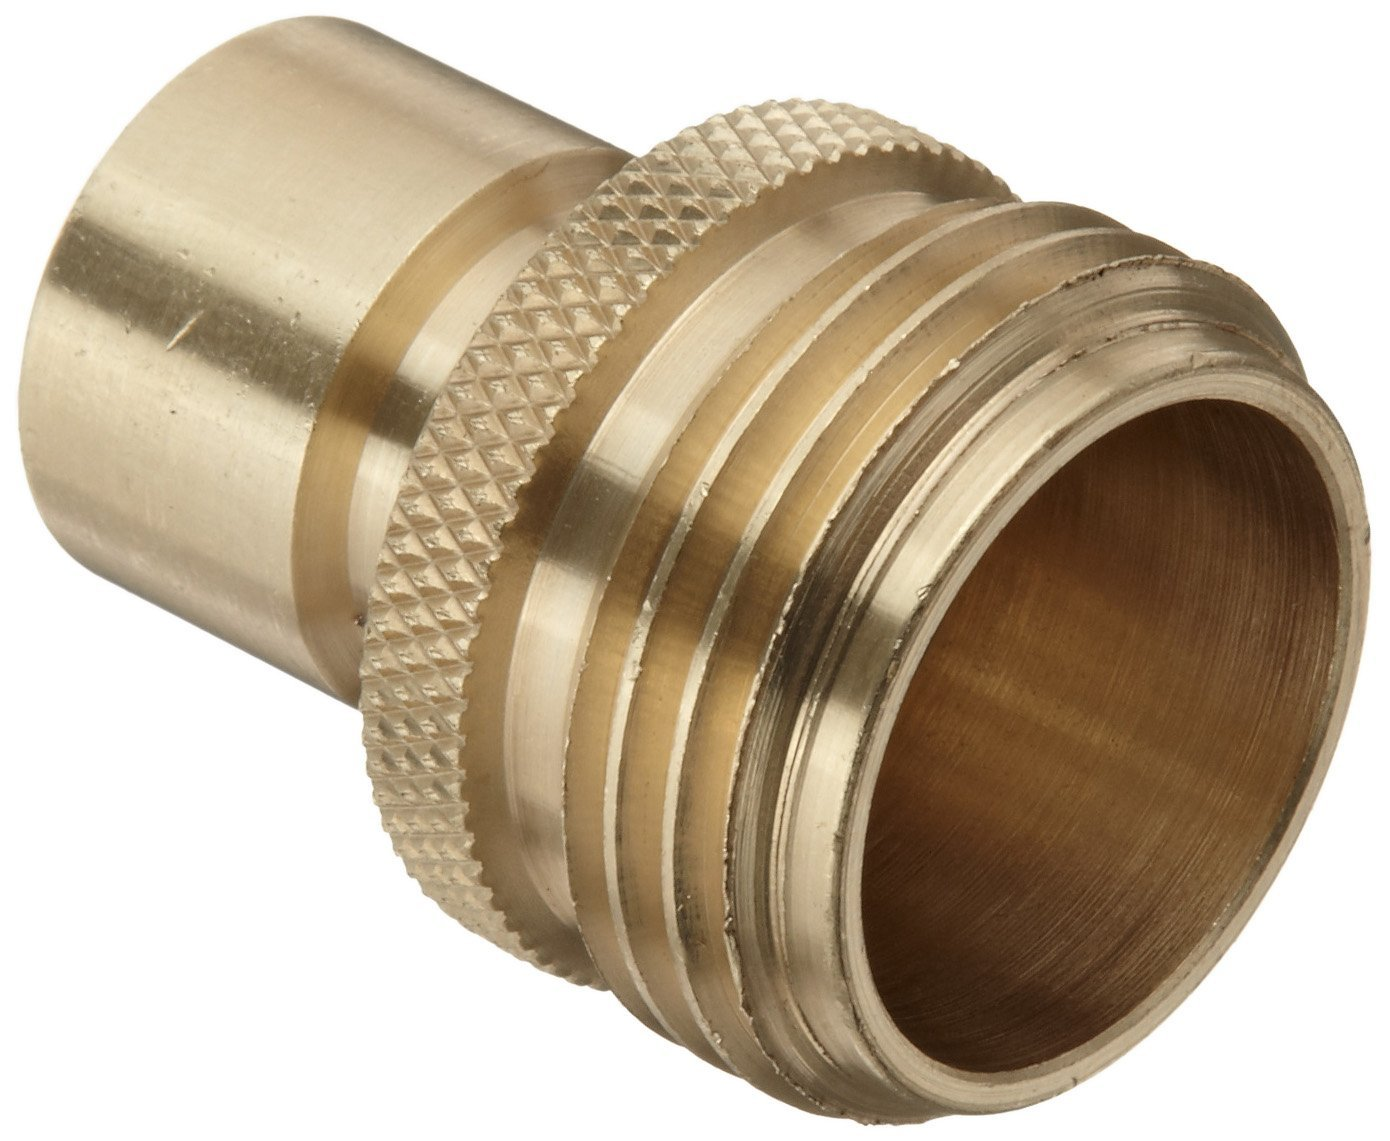 Adapter 5 8 in male garden hose to chicago quick disconnect eagle rock specialties for Male to male garden hose adapter